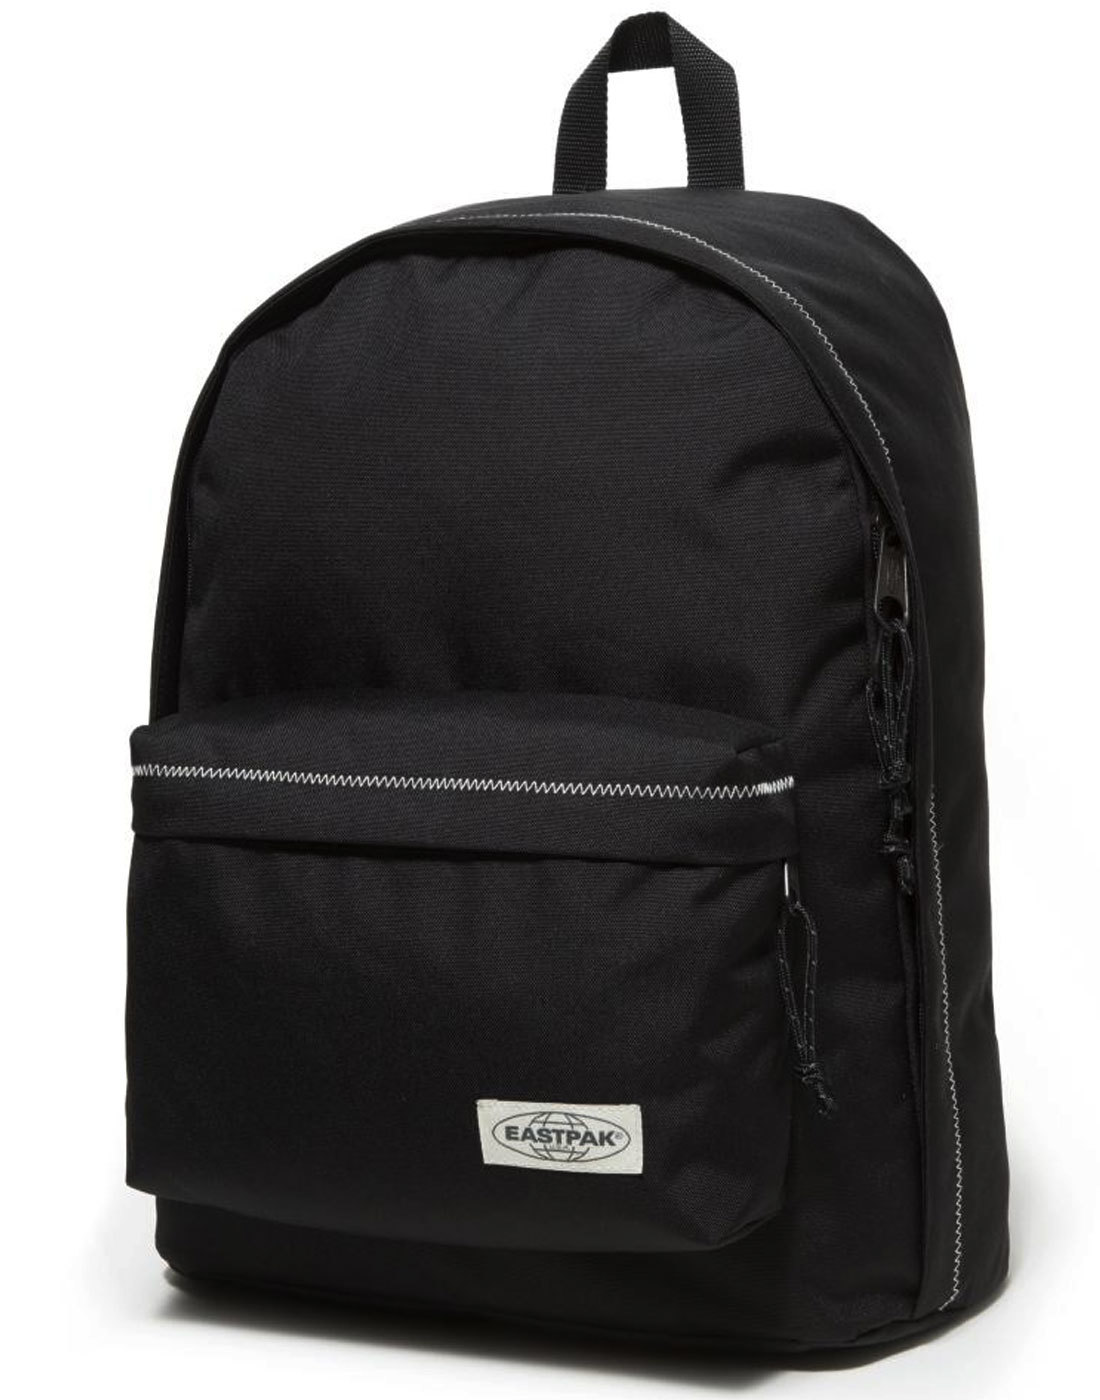 a36ef33eb59 EASTPAK Out Of Office Retro Mod Black Stitched Laptop Backpack